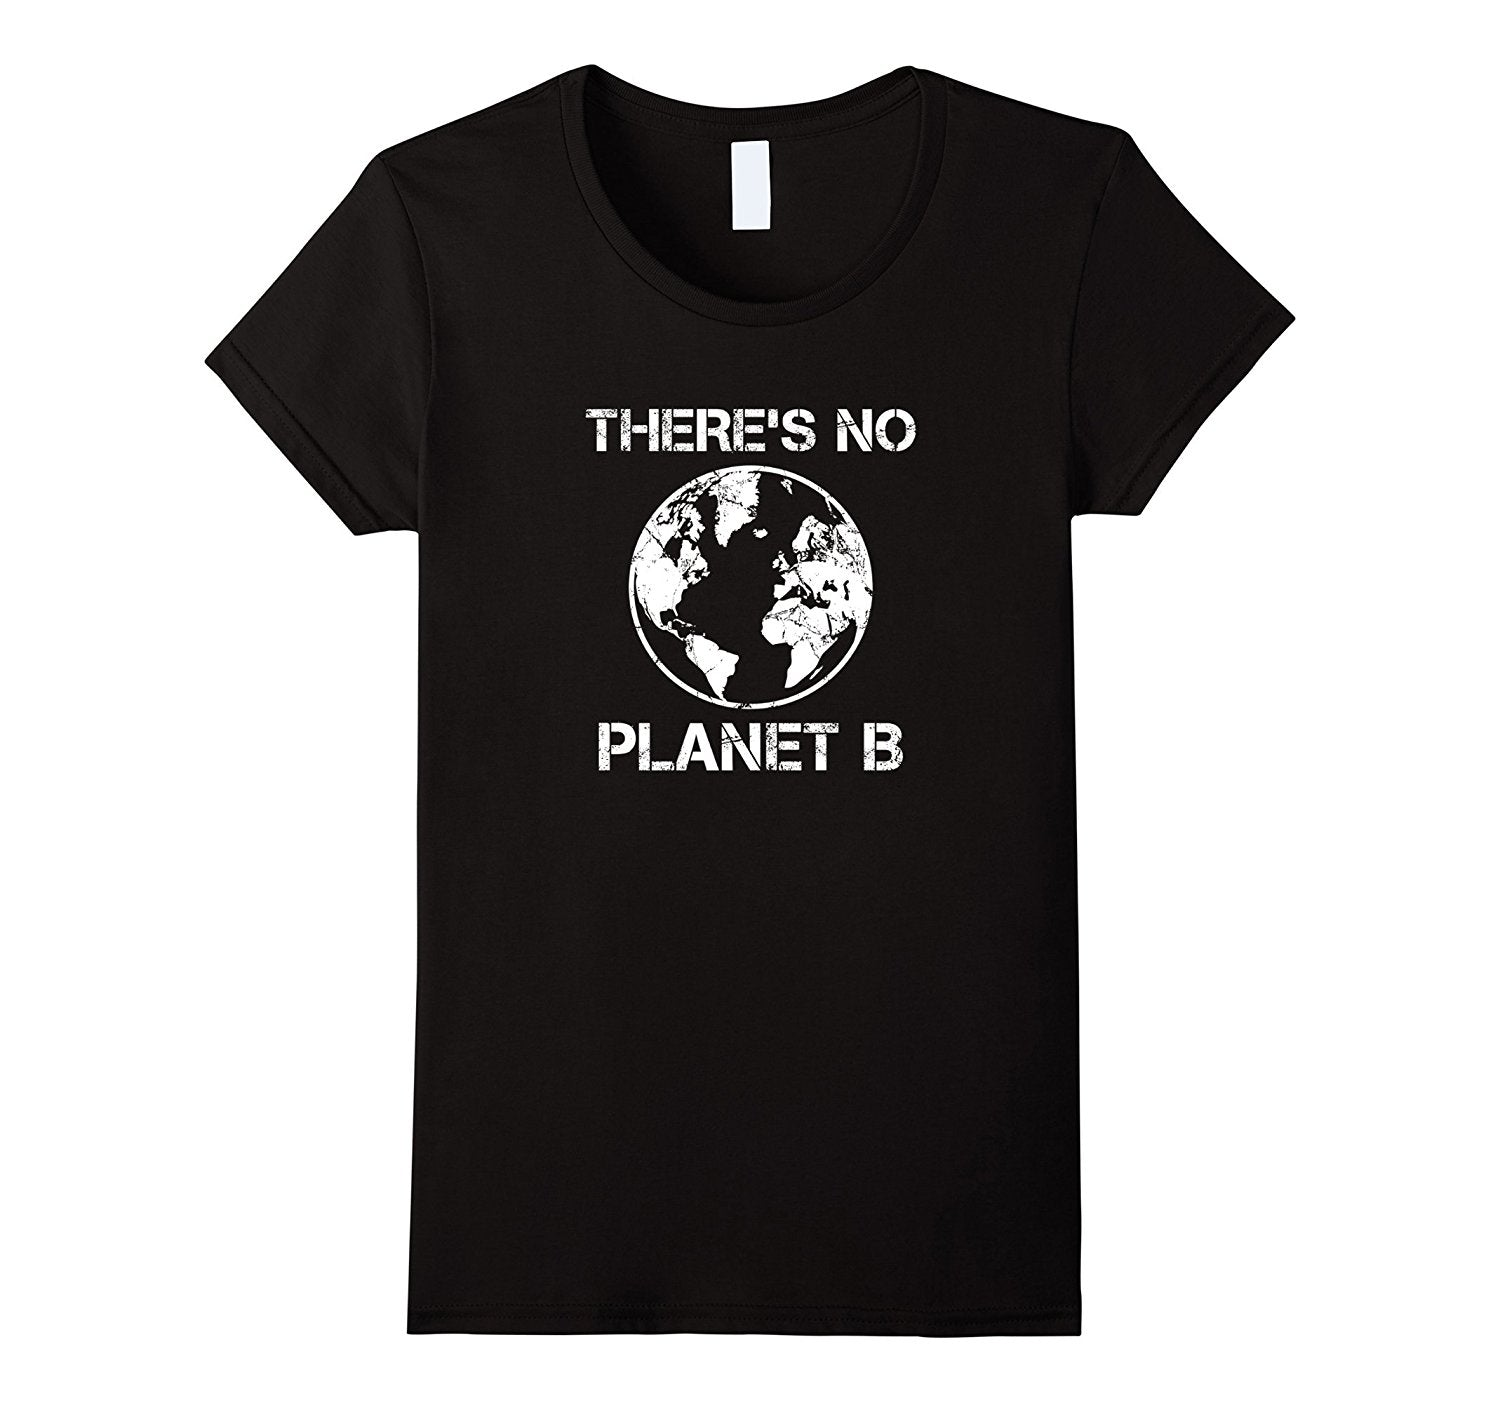 There Is No Planet B - Earth Day T-Shirt Punk Kawaii Women'S T Shirt Tops Tee Black Style Print T Shirt for Women Harajuku